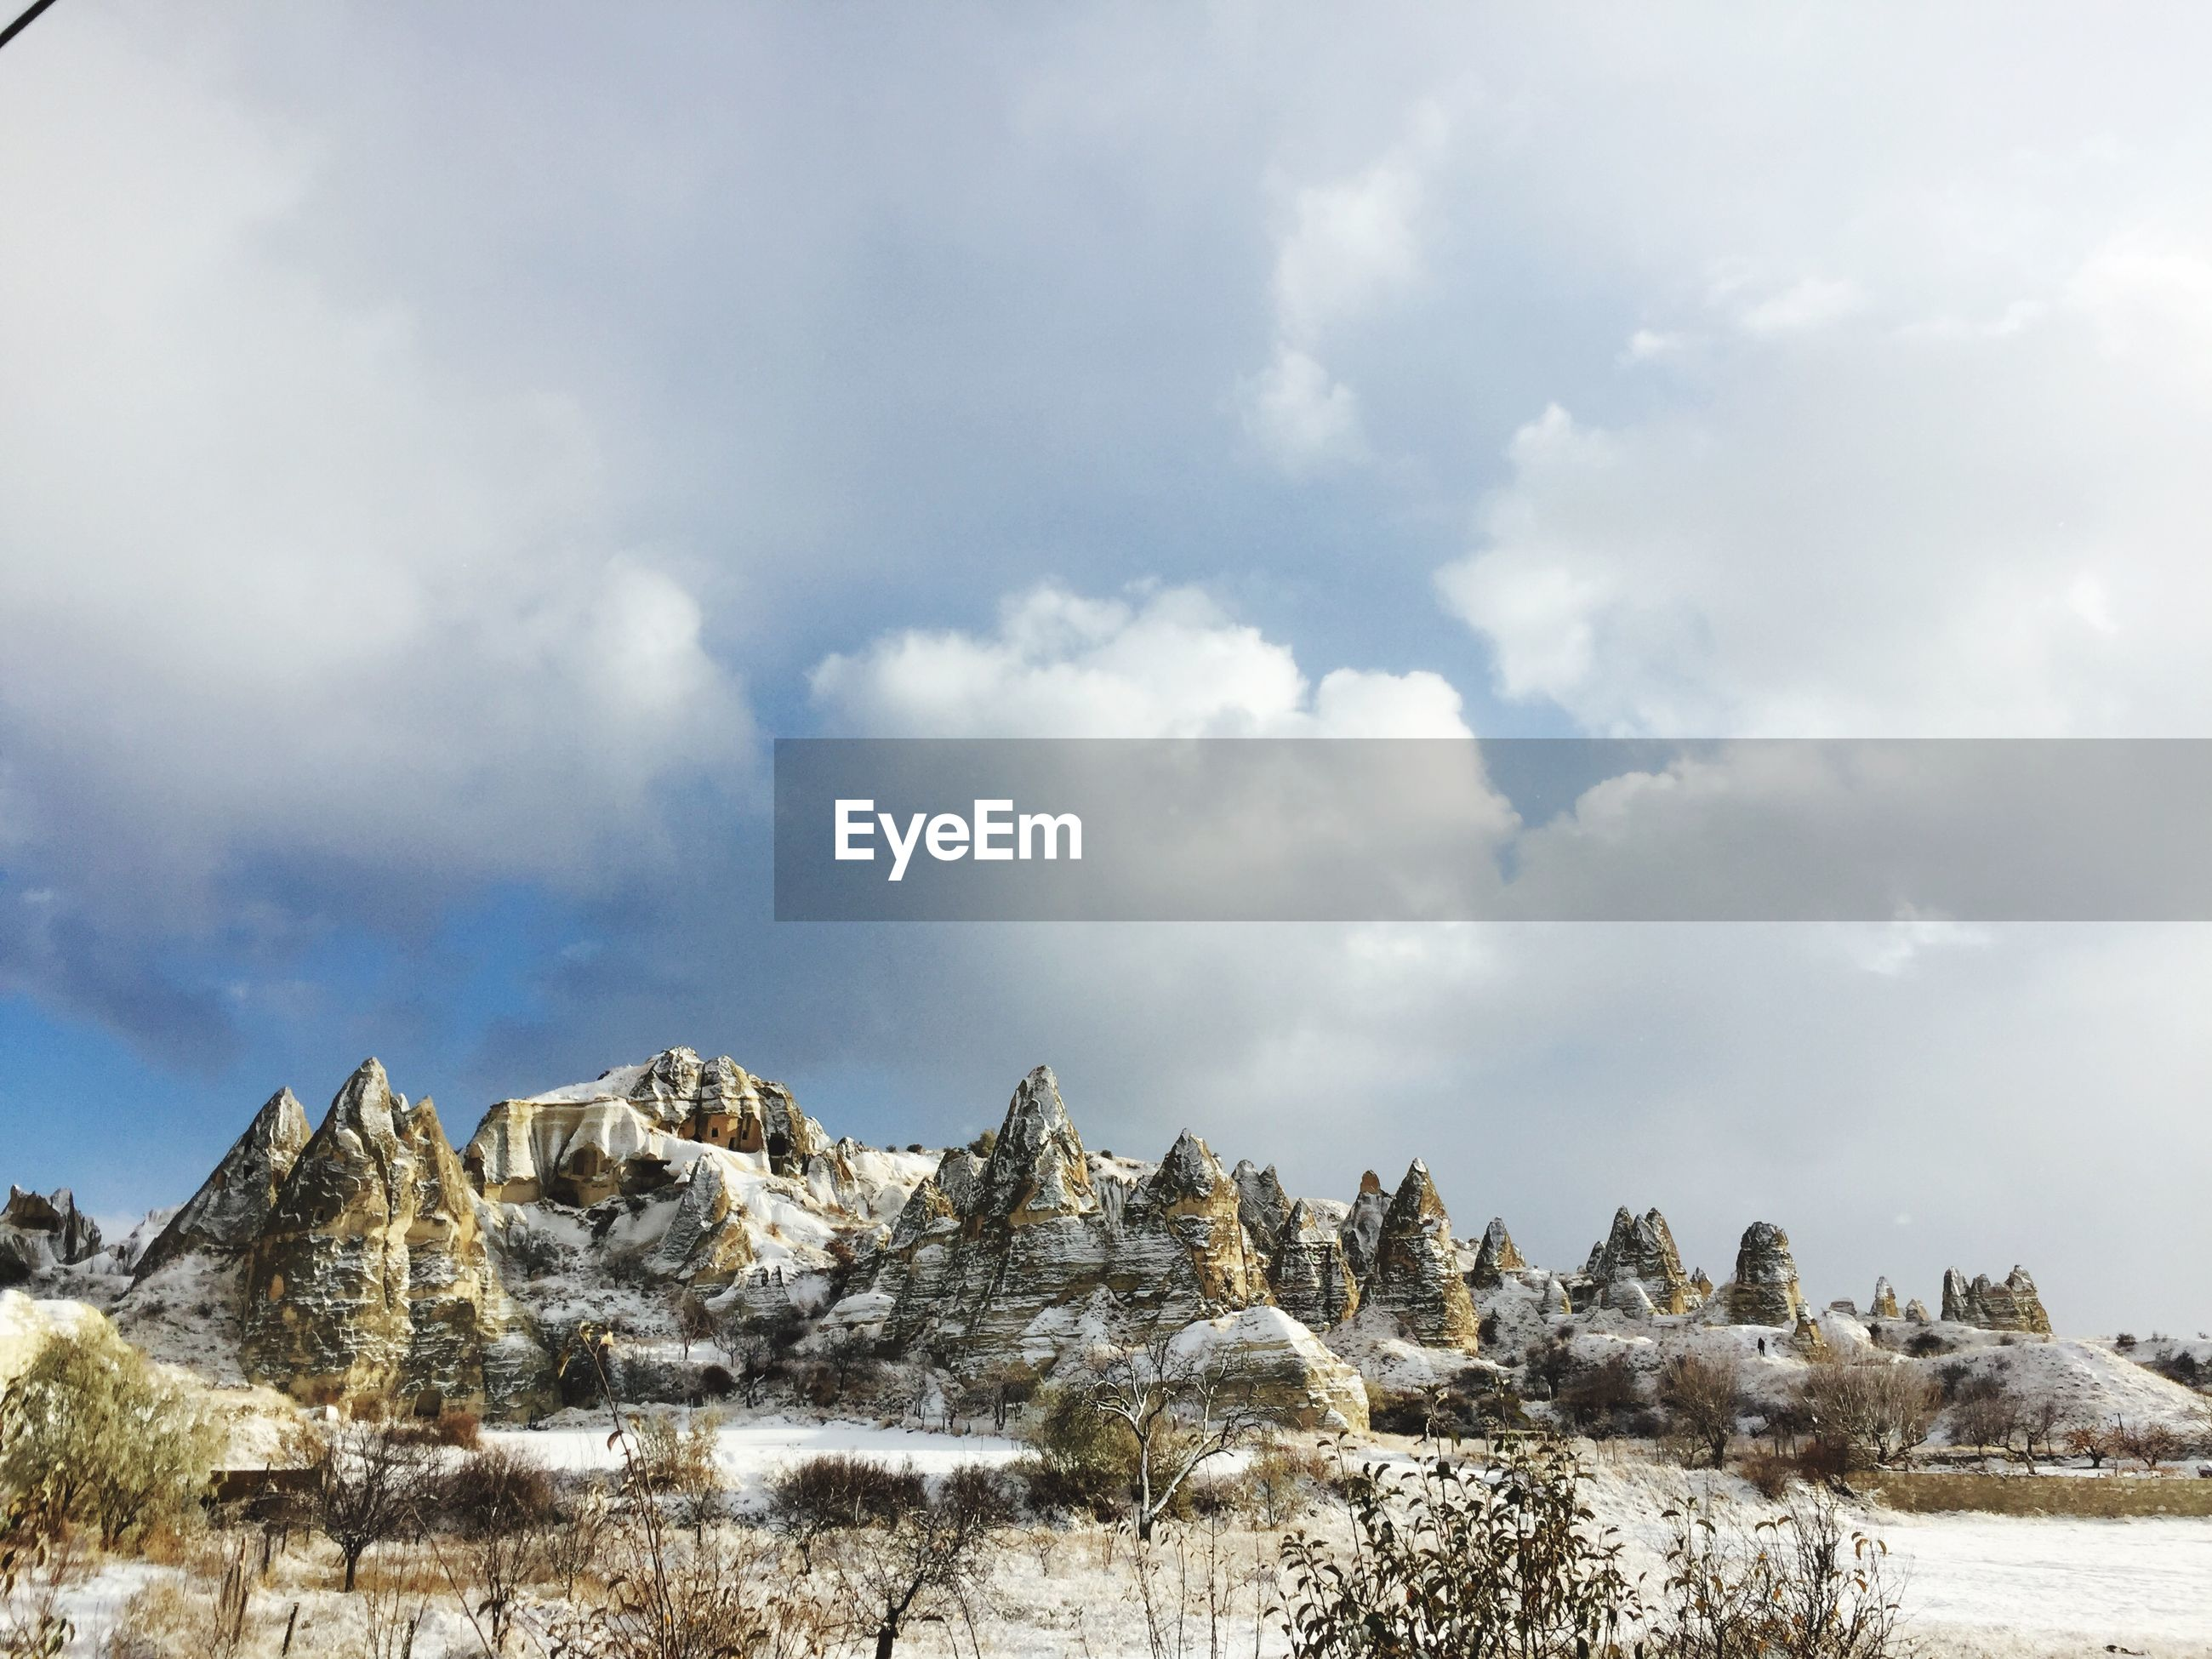 Rock formations against sky at cappadocia during winter